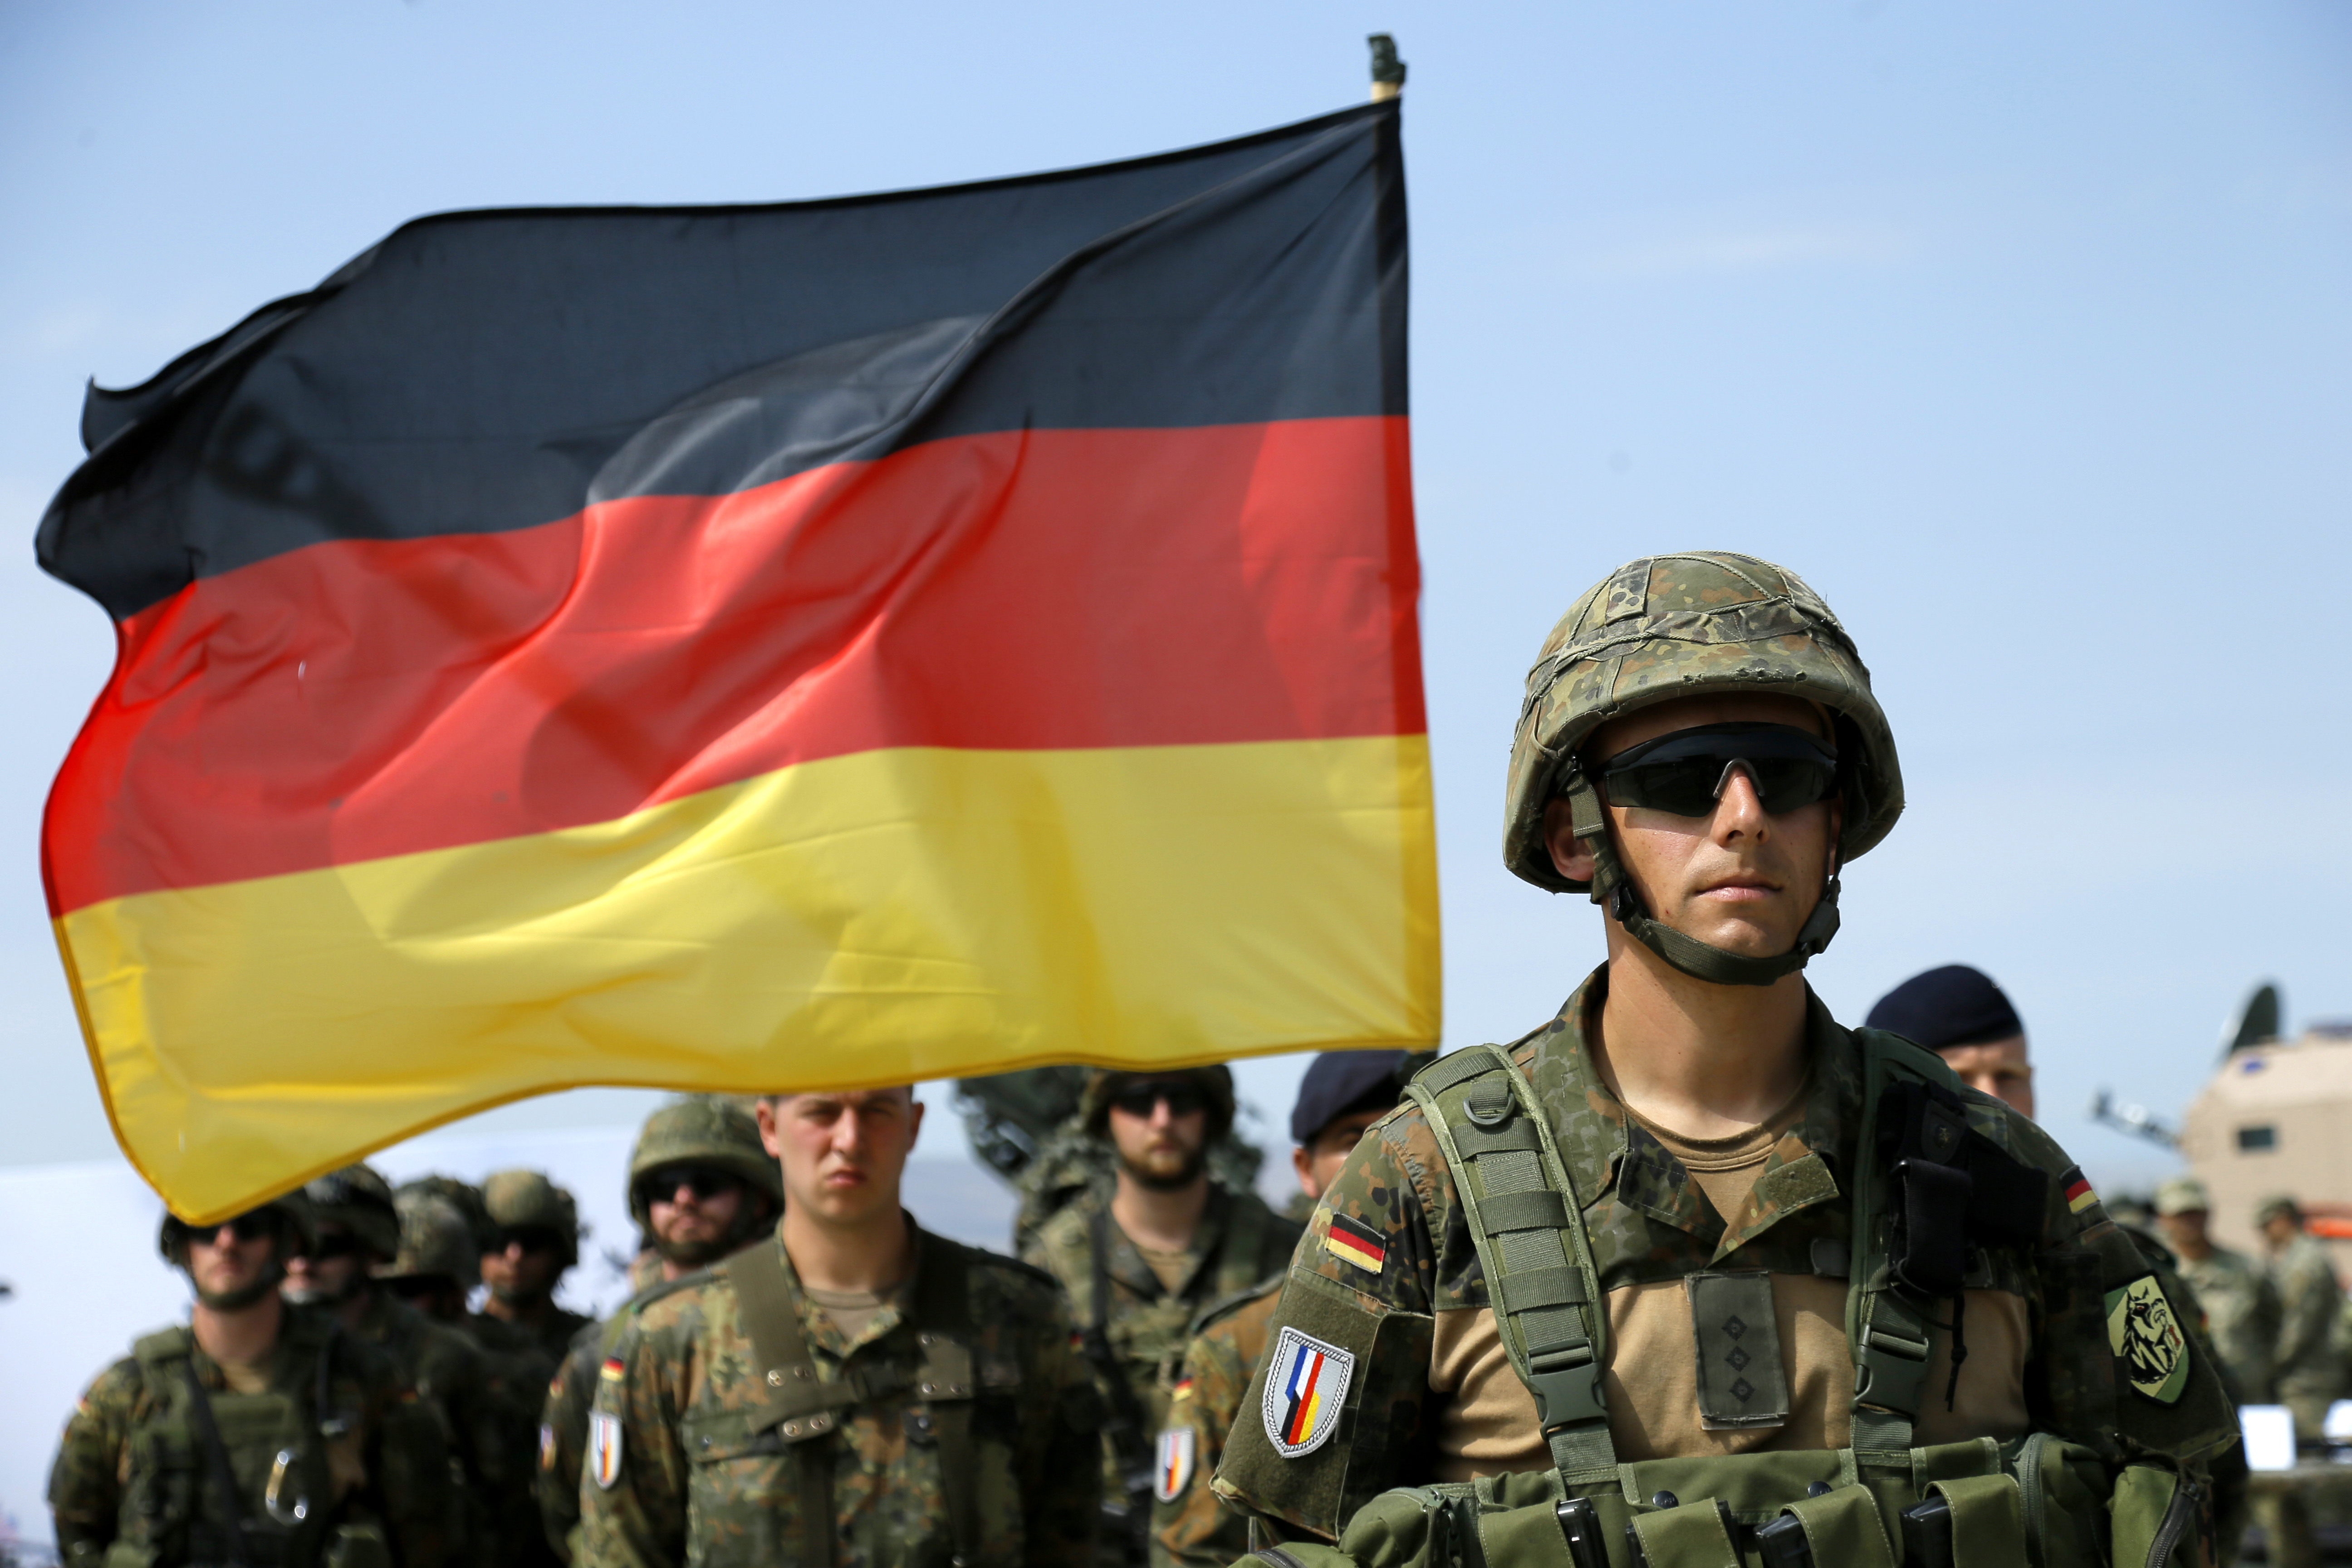 Germany to miss NATO spending target